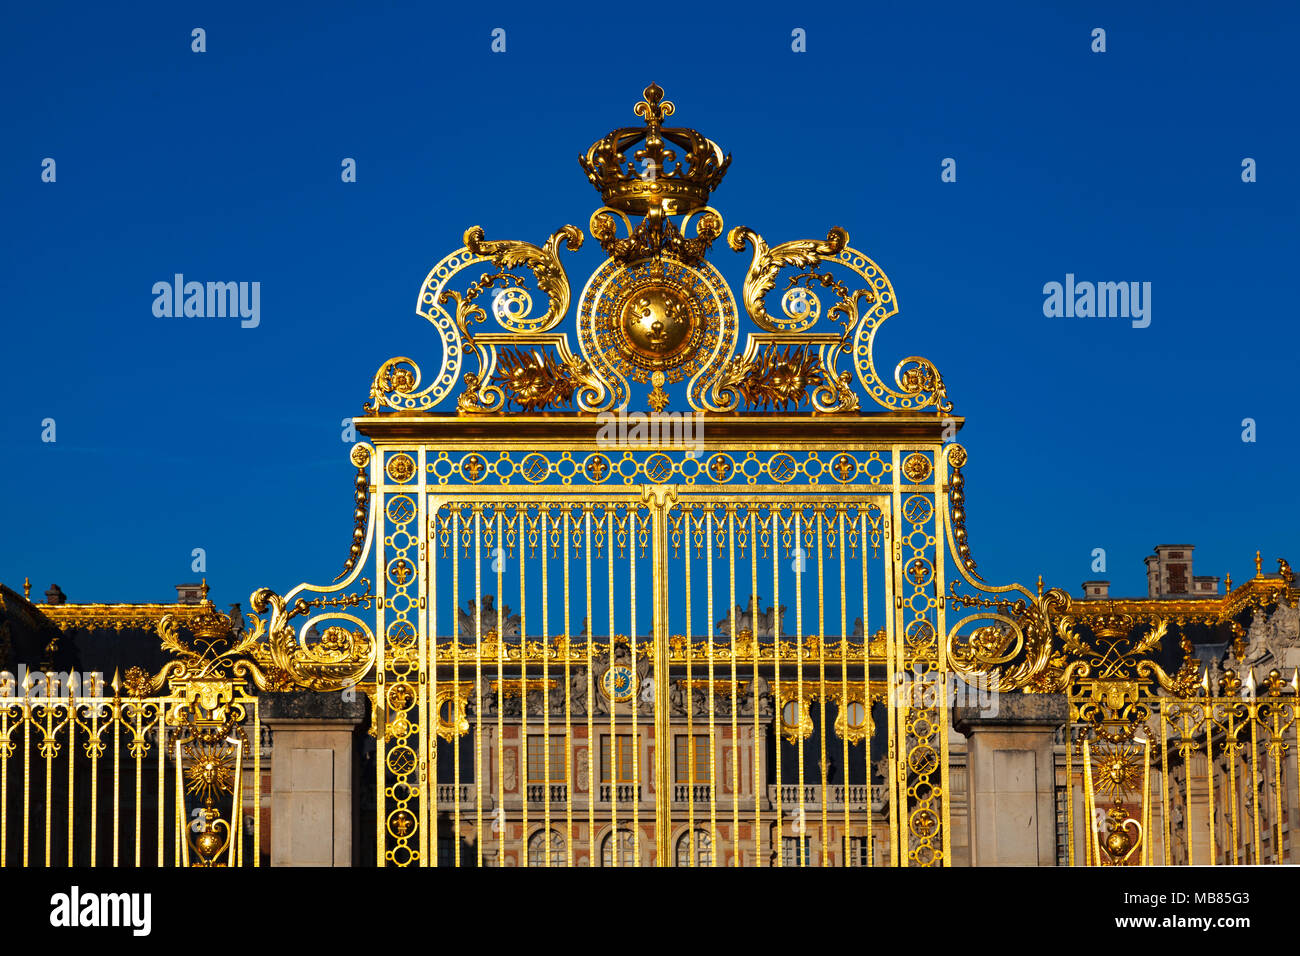 Chateau de Versailles (Palace of Versailles), a UNESCO World Heritage Site, France - The Gate of Honour - Stock Image